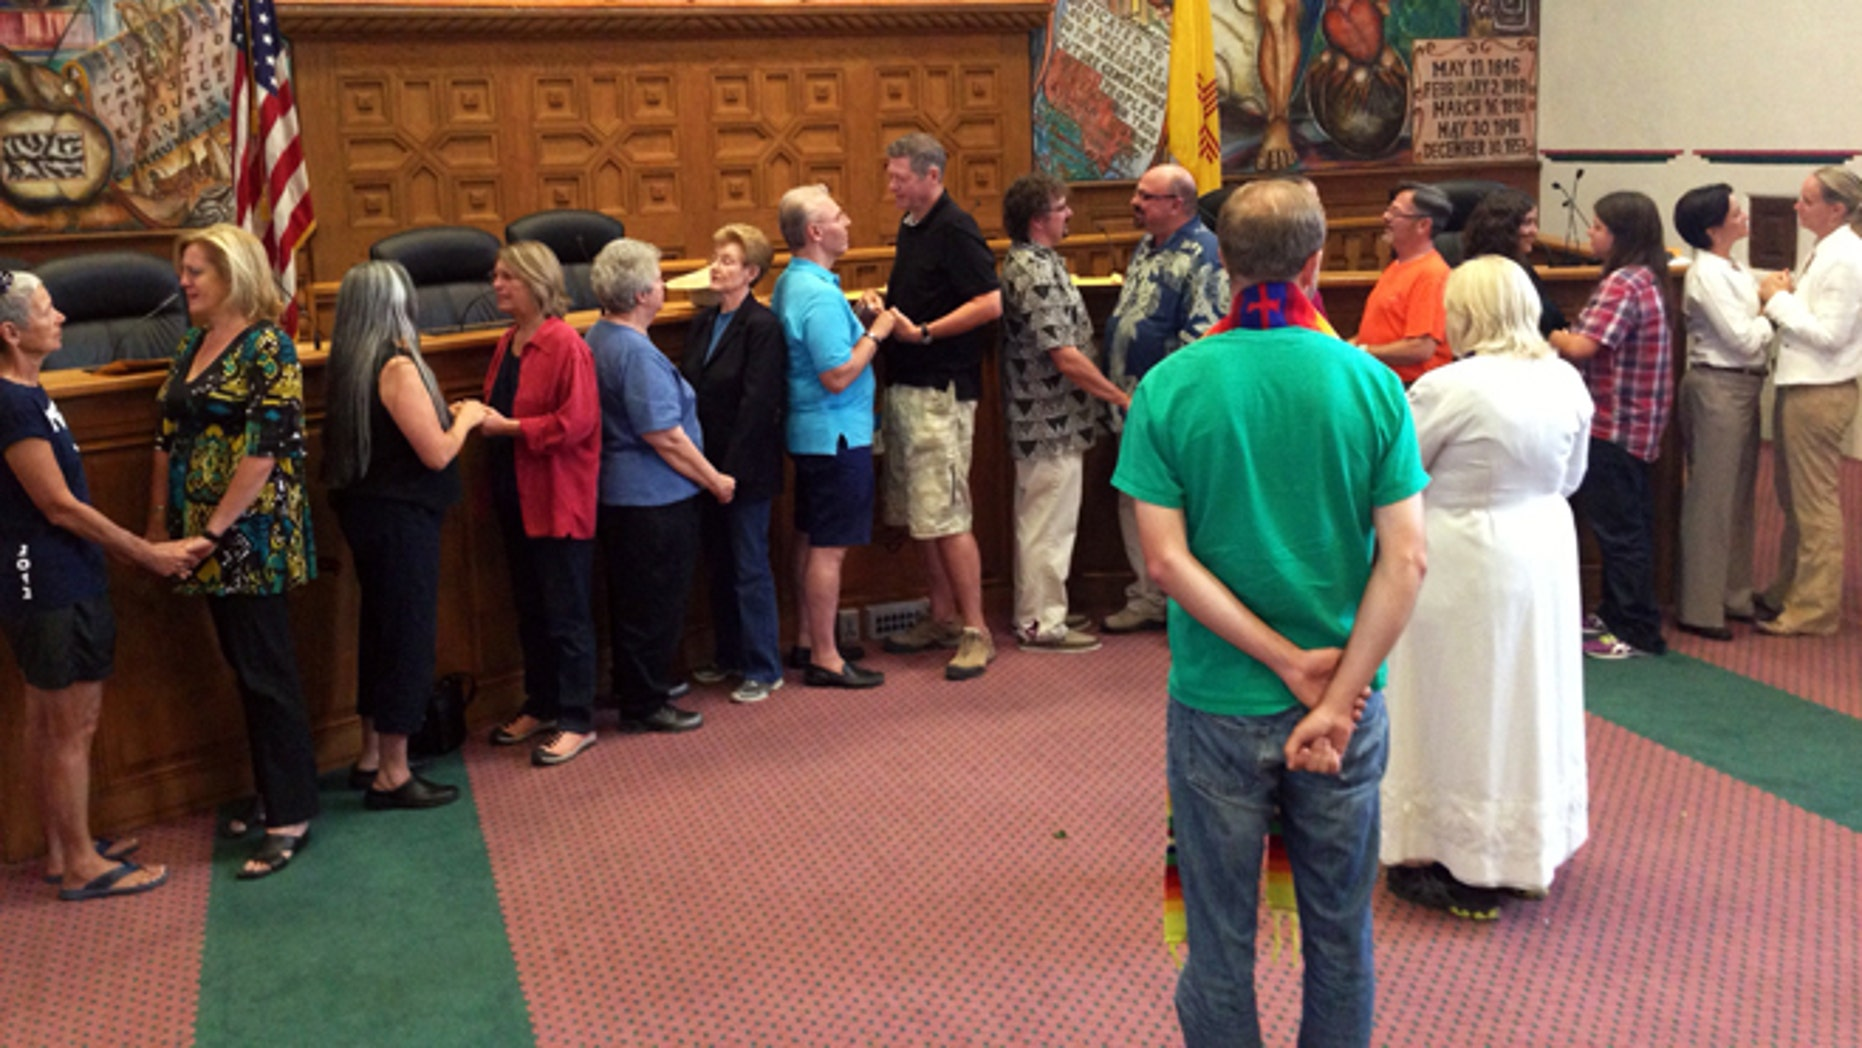 Nine same-sex couples take their wedding vows in the Santa Fe County Commission's chambers after receiving marriage licenses in Santa Fe, N.M., on Friday, Aug. 23. The Rev. Talitha Arnold, in white in foreground, of the United Church of Santa Fe officiated the ceremony. (AP Photo/Barry Massey)